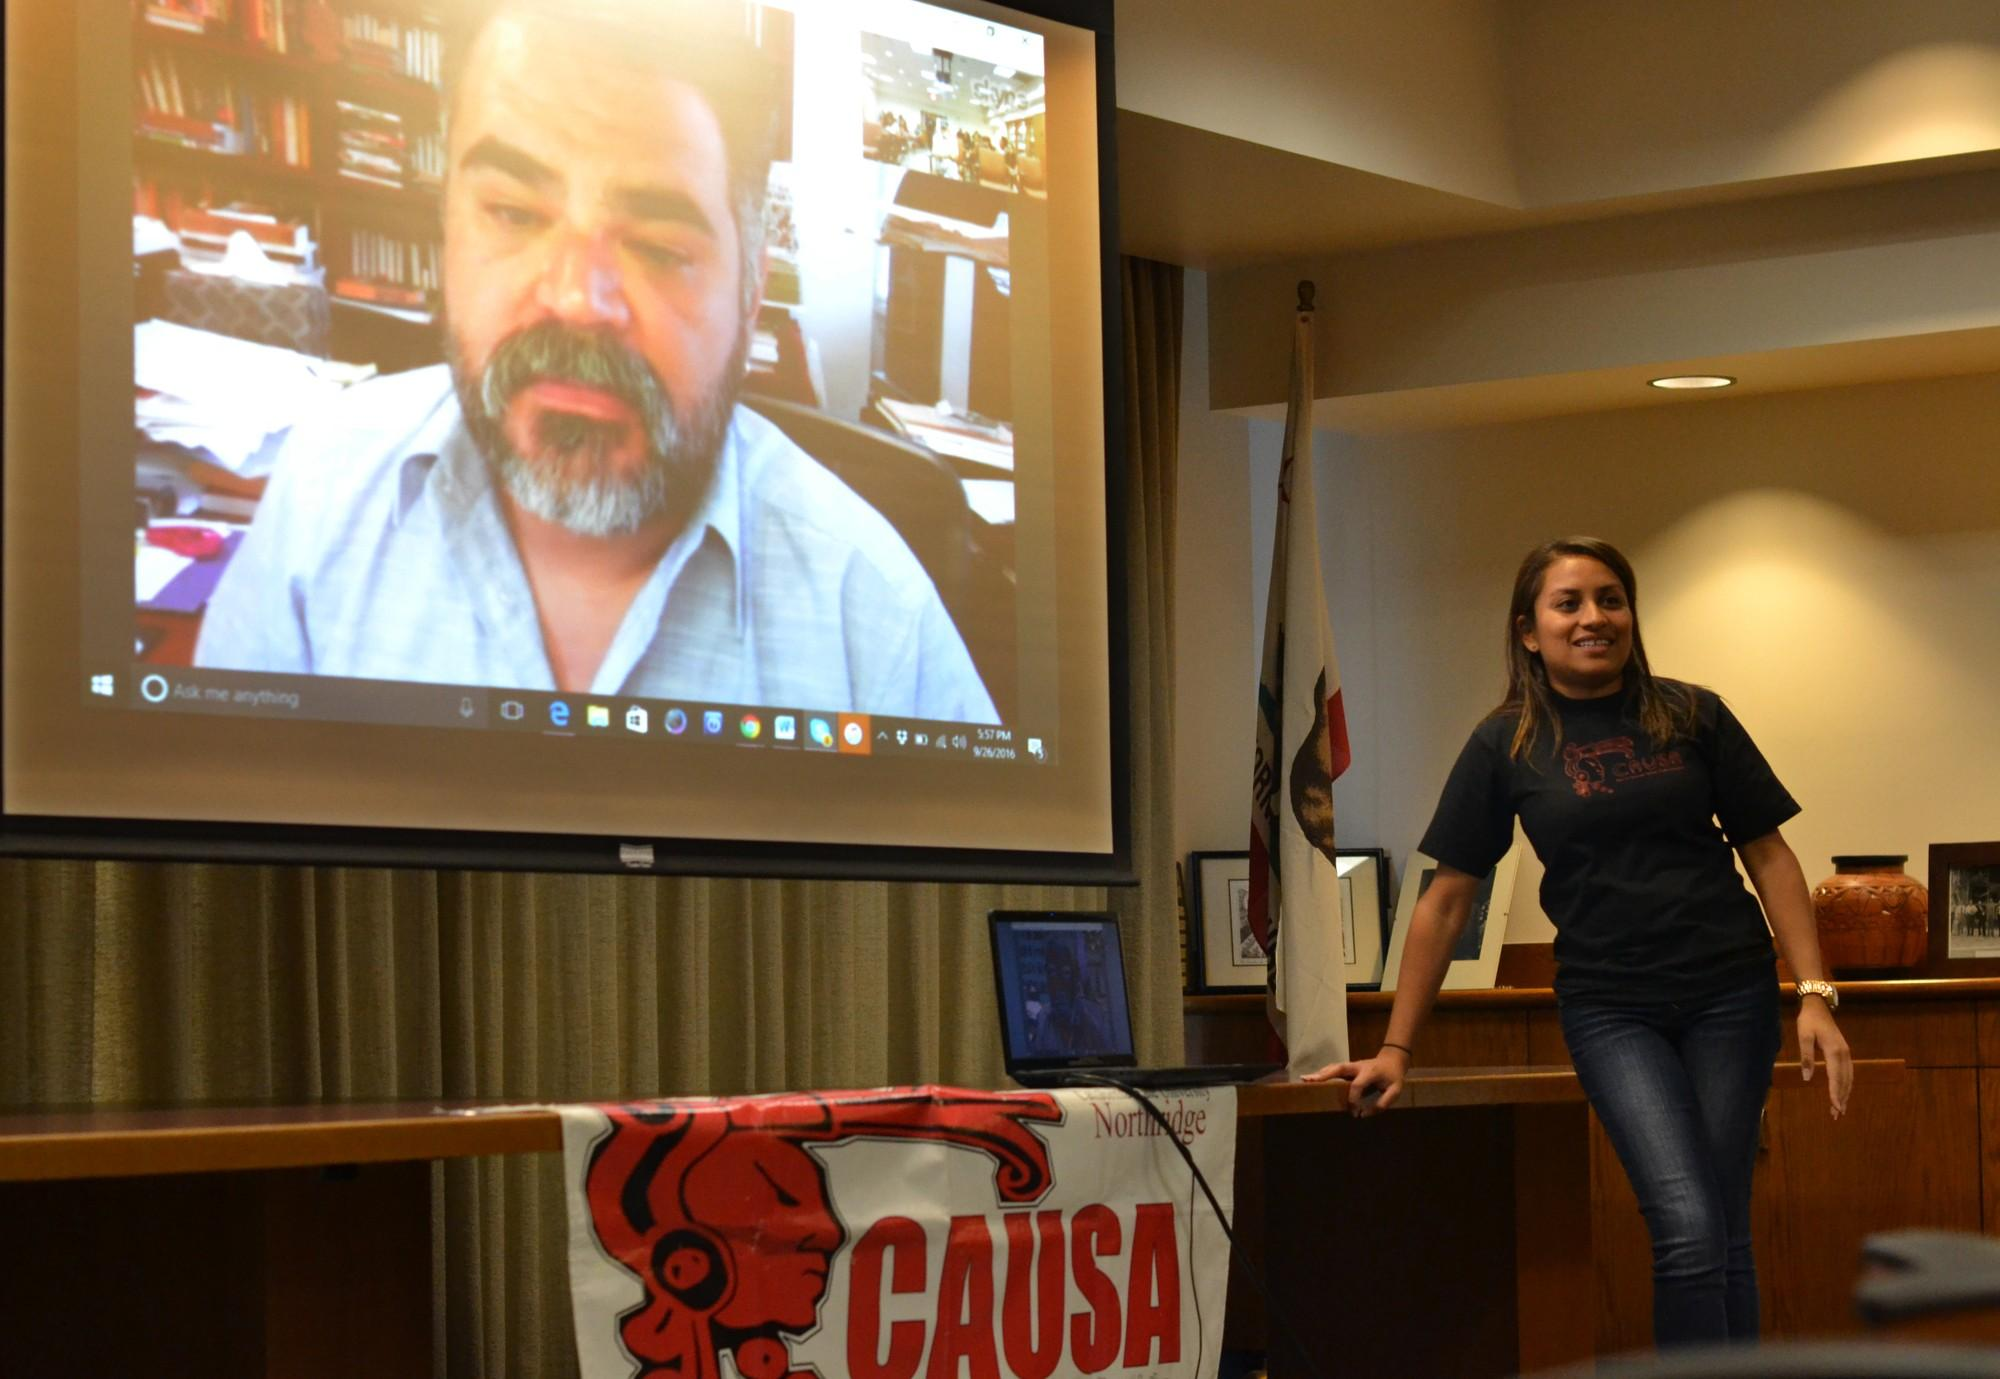 CAUSA Film Screening revisits 2014 Disappearance of 43 Mexican Students in Iguala